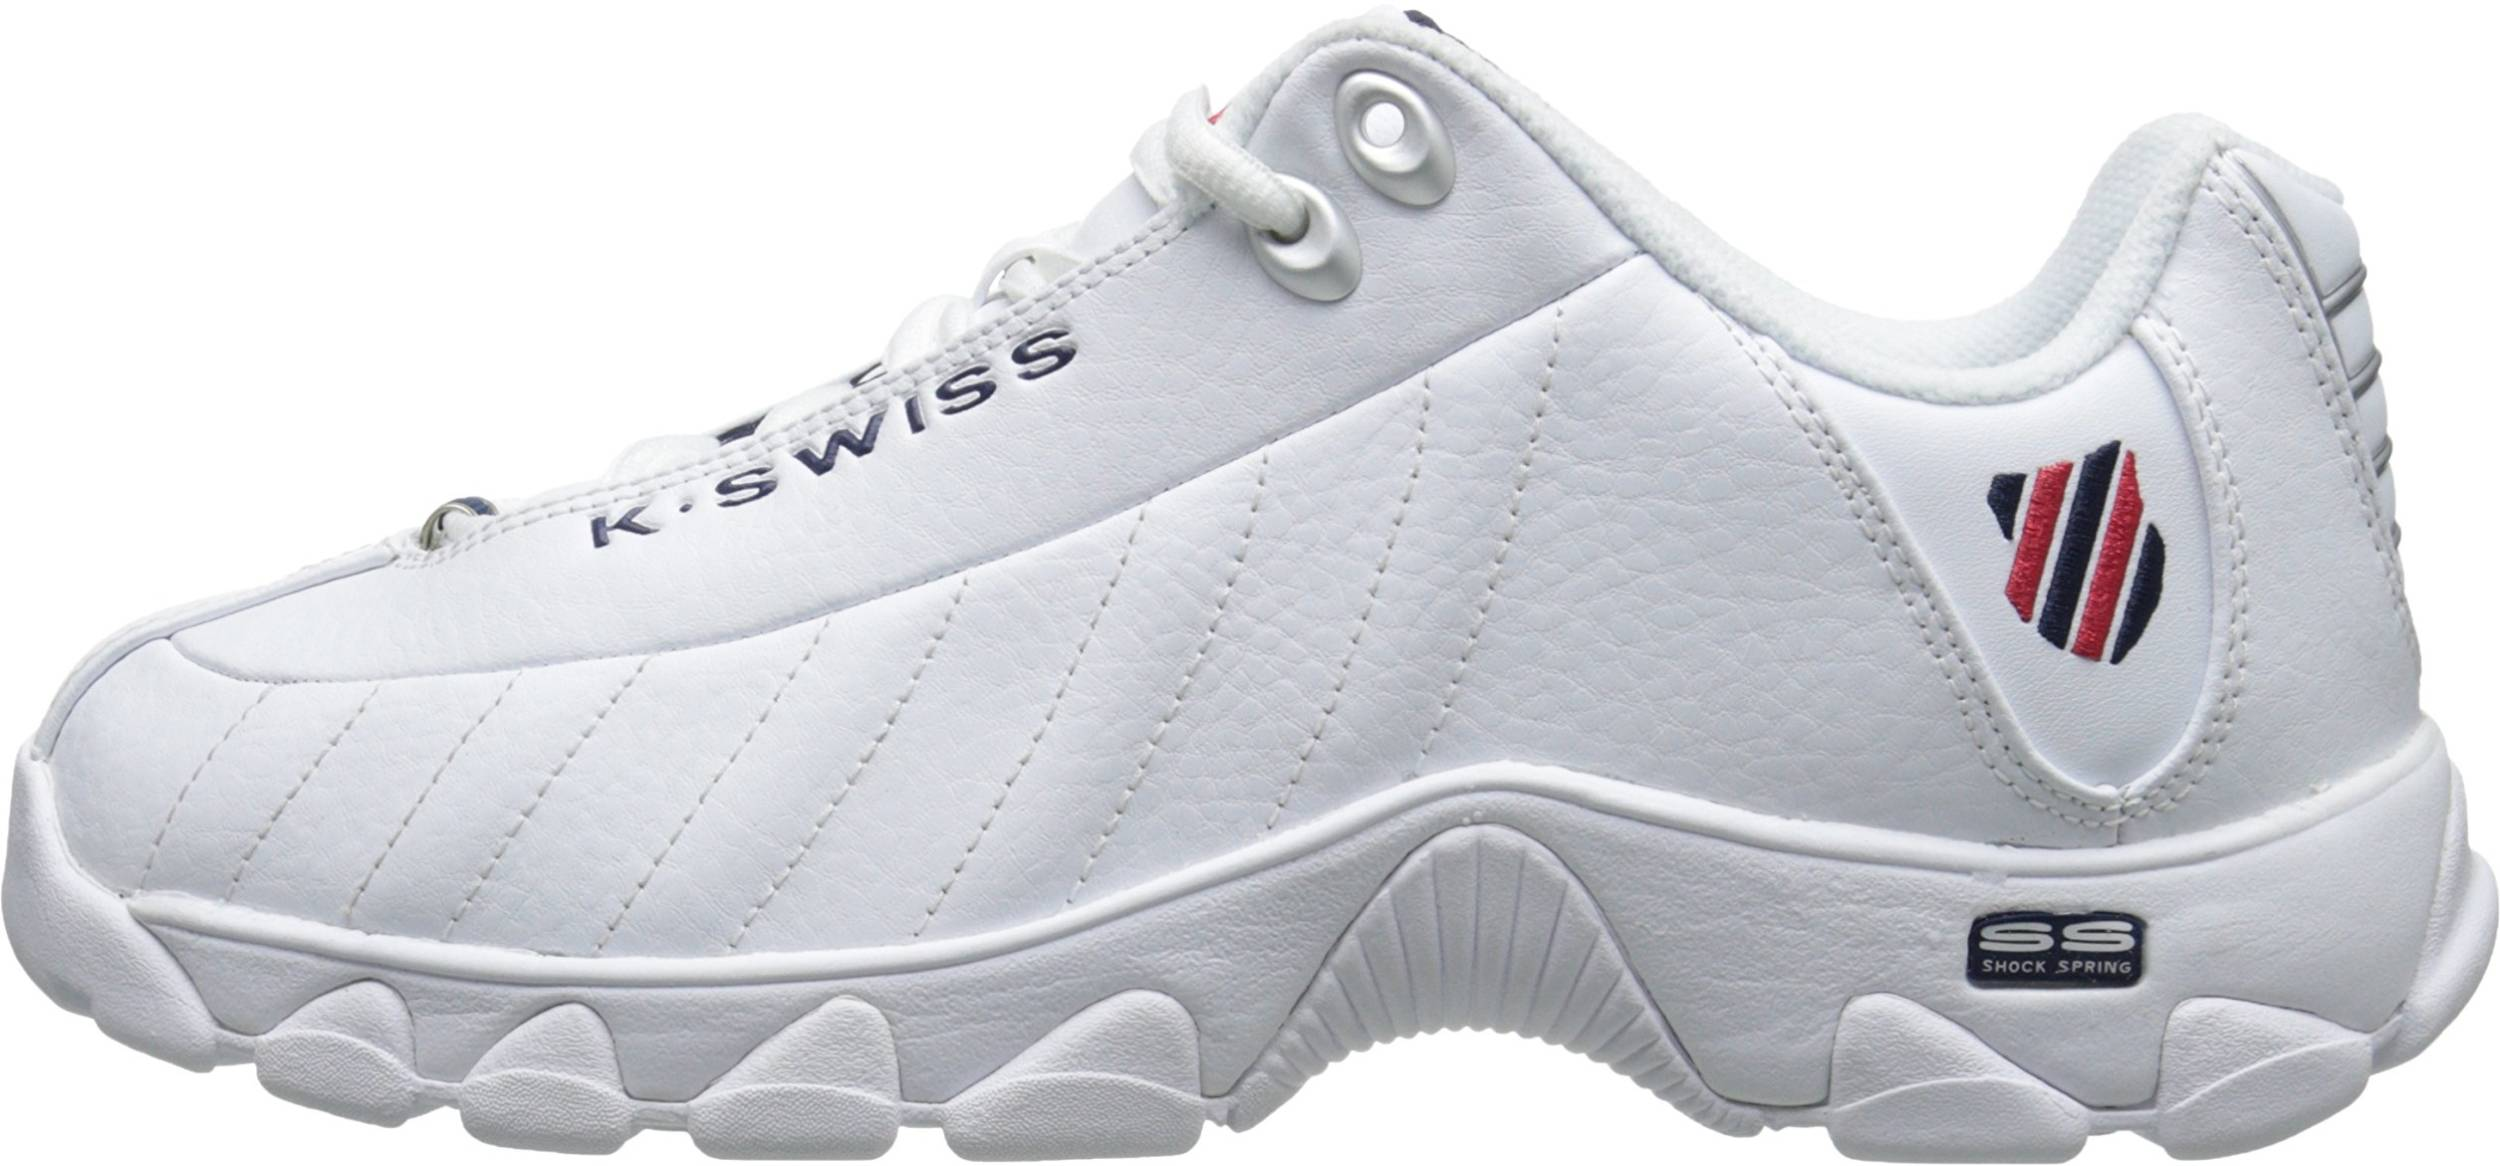 Save 29% on White K-Swiss Sneakers (20